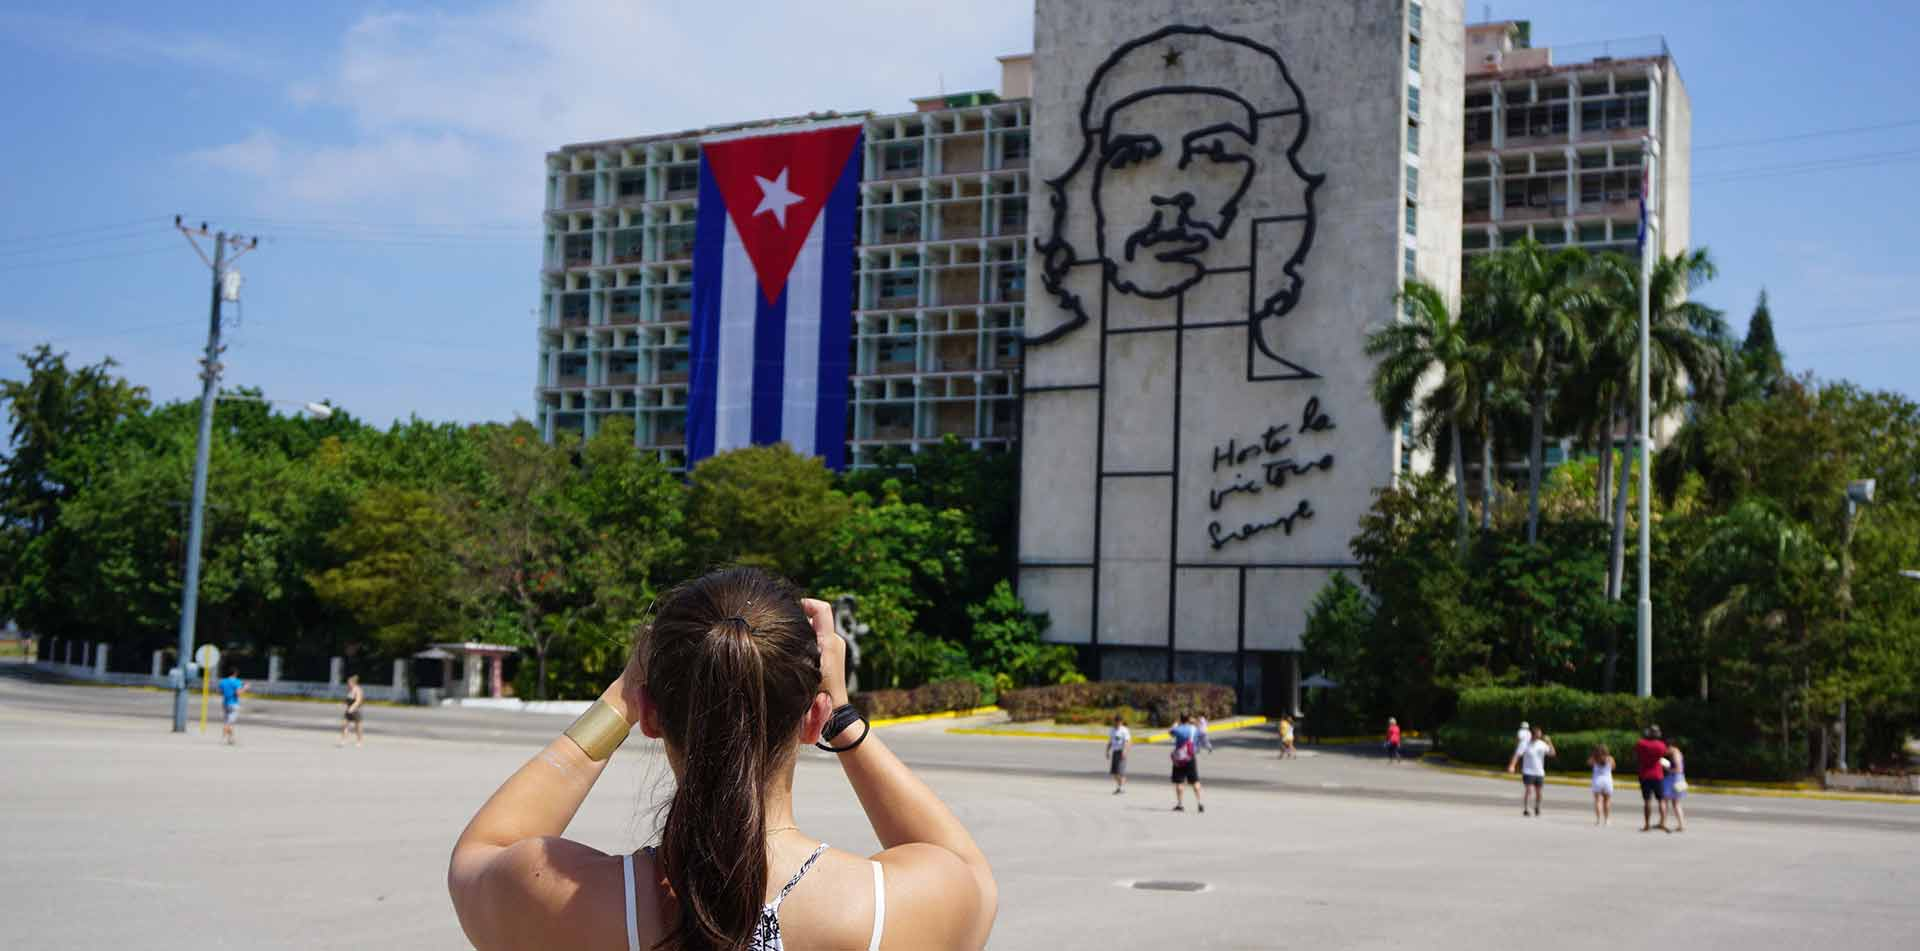 North America Caribbean Cuba Havana Plaza de la Revolucion Che Guevara mural street art flag - luxury vacation destinations